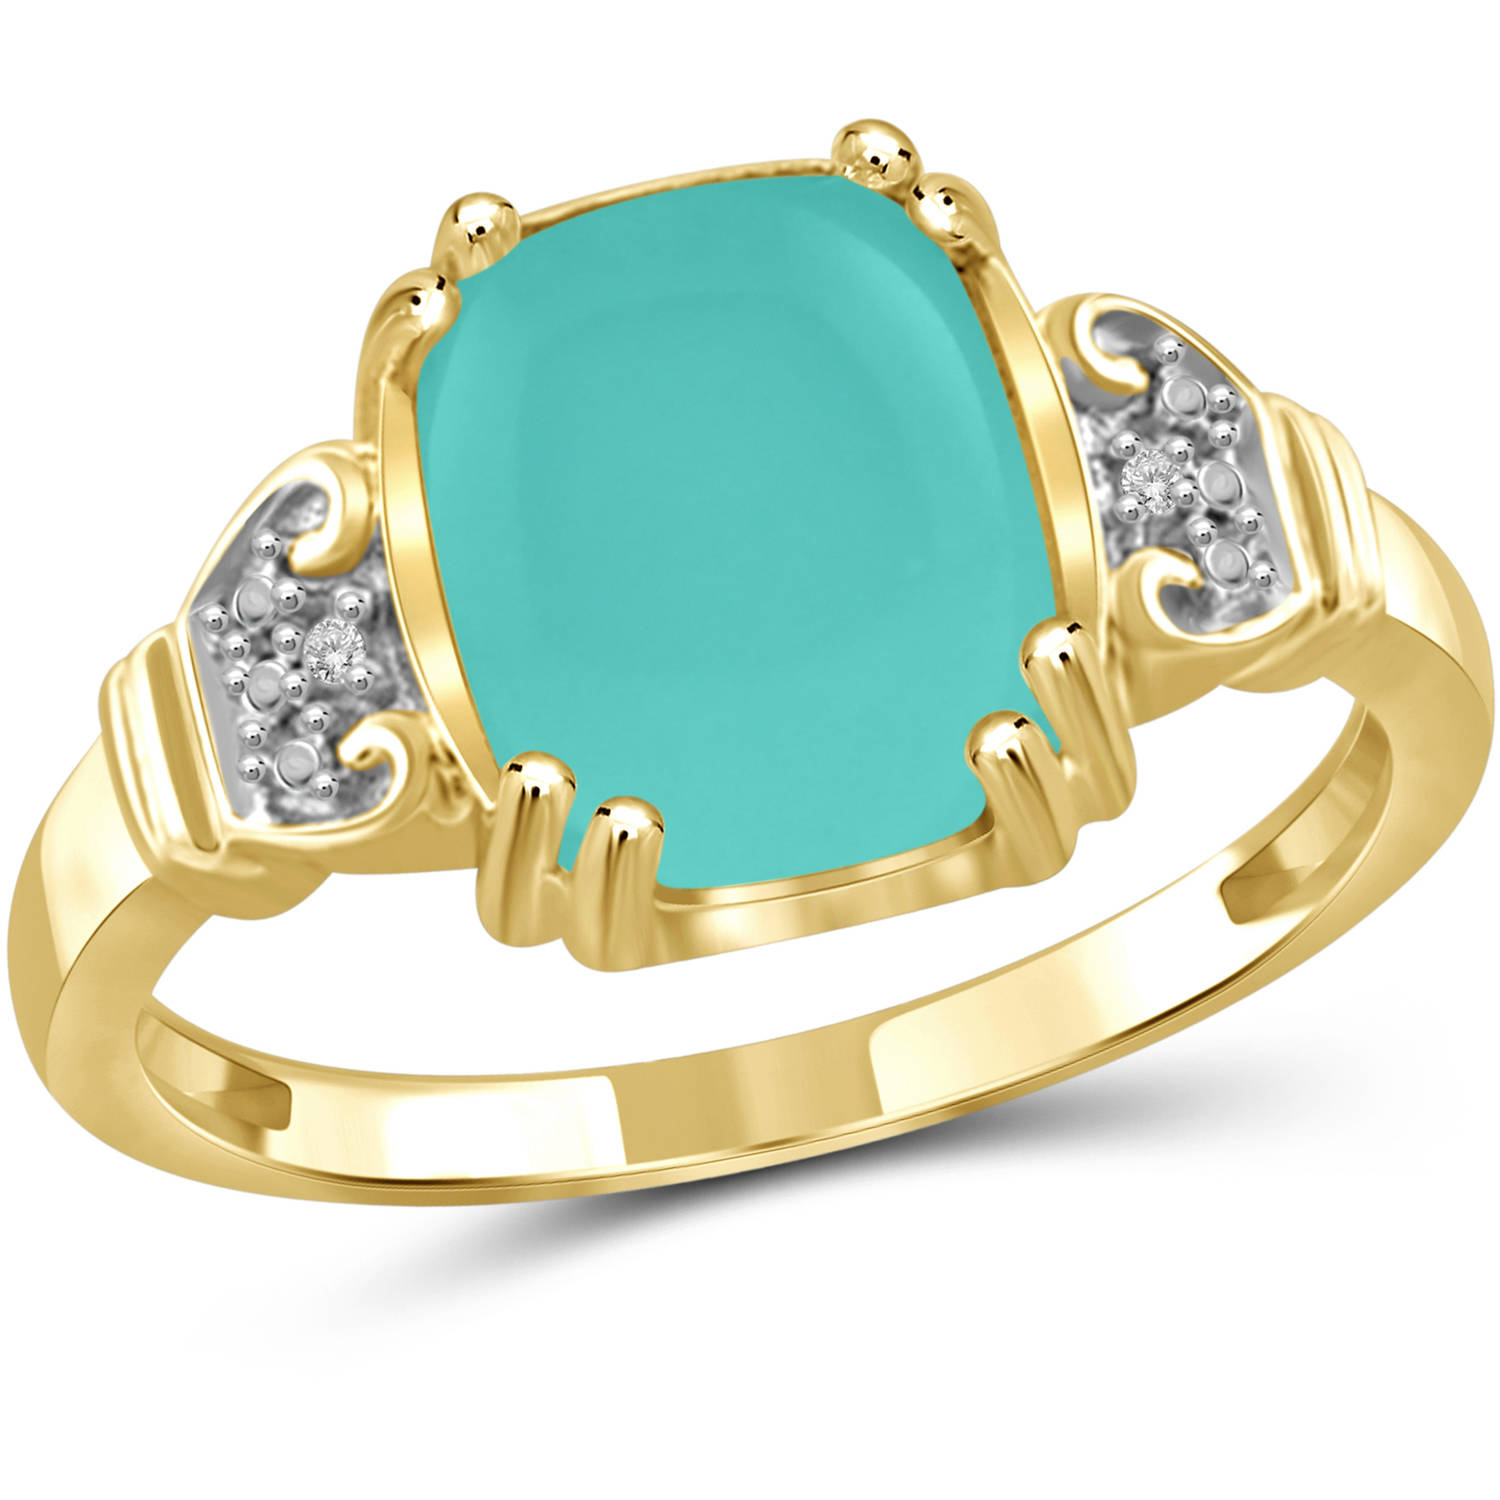 JewelersClub 2-3 4 Carat T.G.W. Chalcedony and White Diamond Accent 14kt Gold over Silver Fashion Ring by JewelersClub